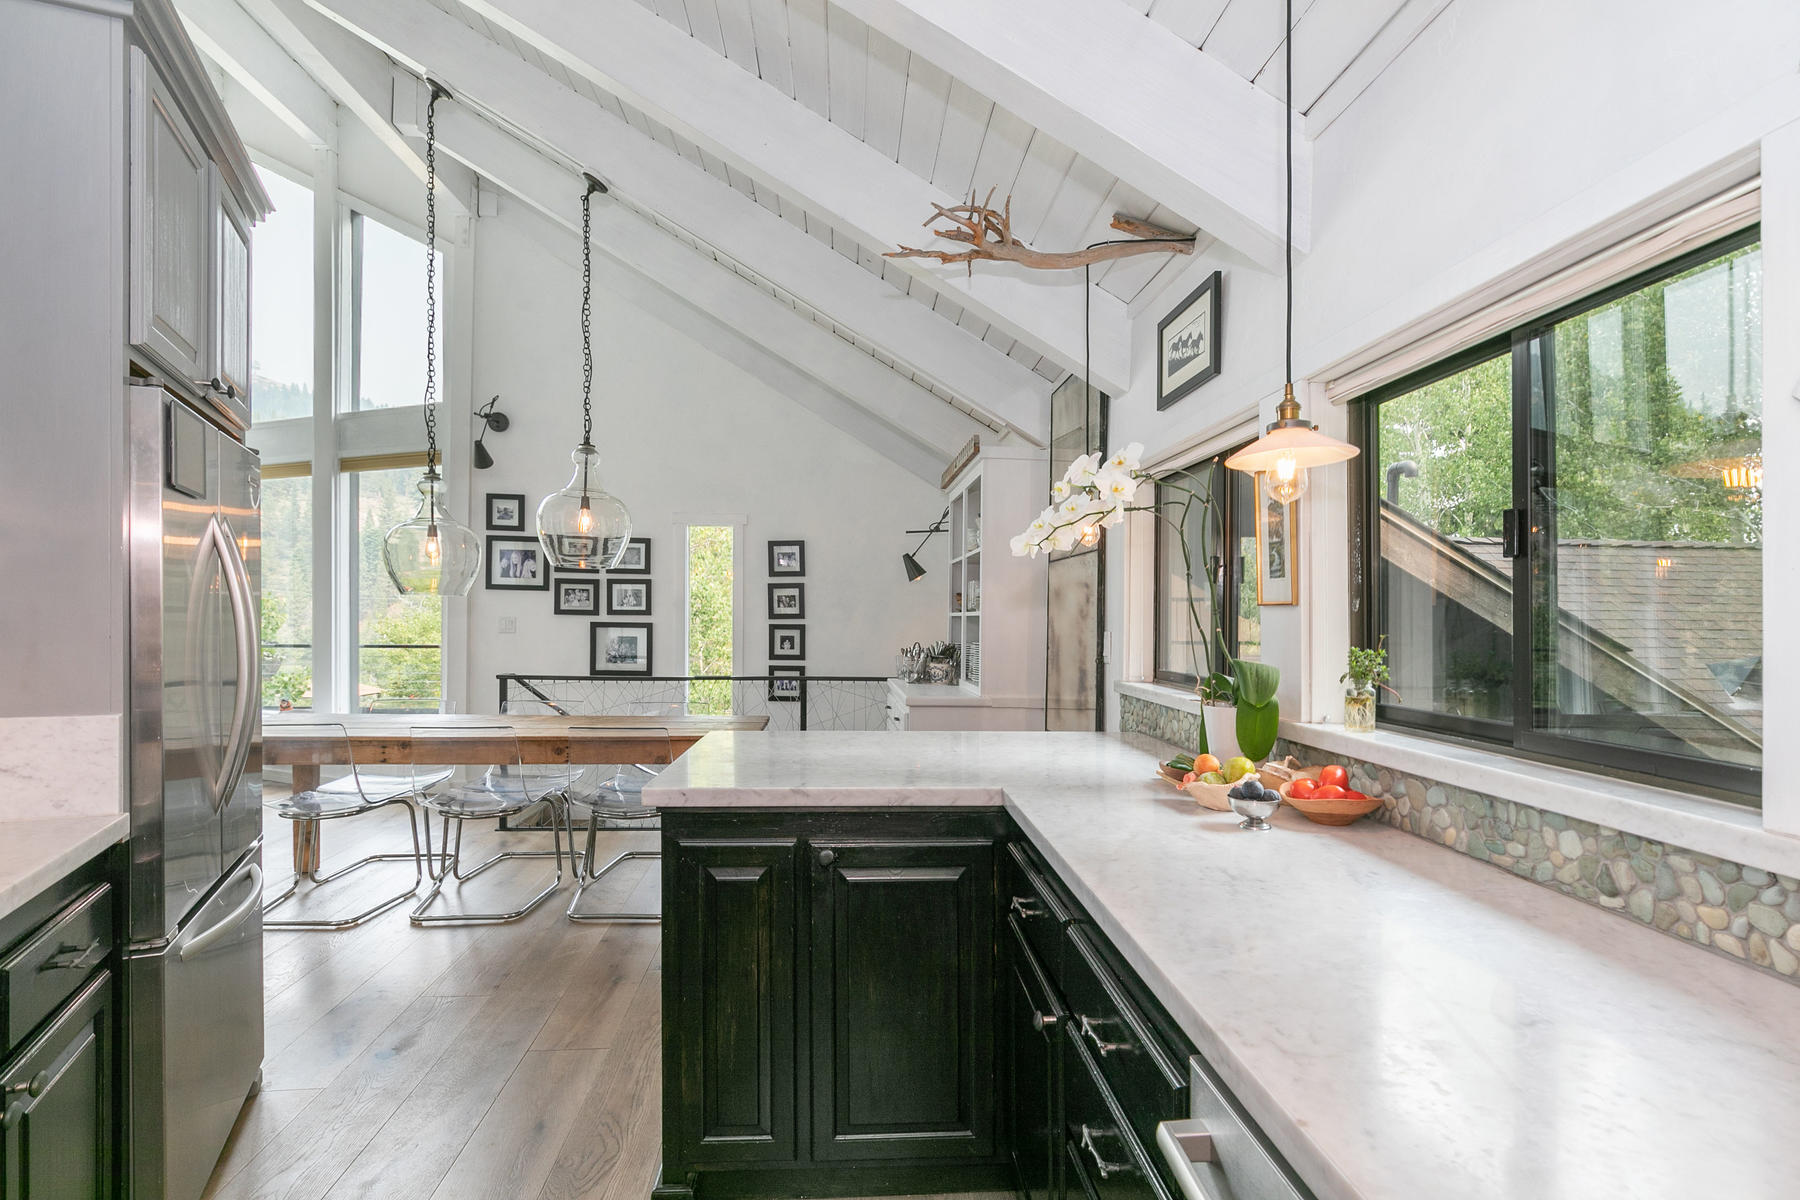 Additional photo for property listing at Alpine Meadows Scandinavian Modern 1329 Pine Trail Alpine Meadows, California 96146 United States